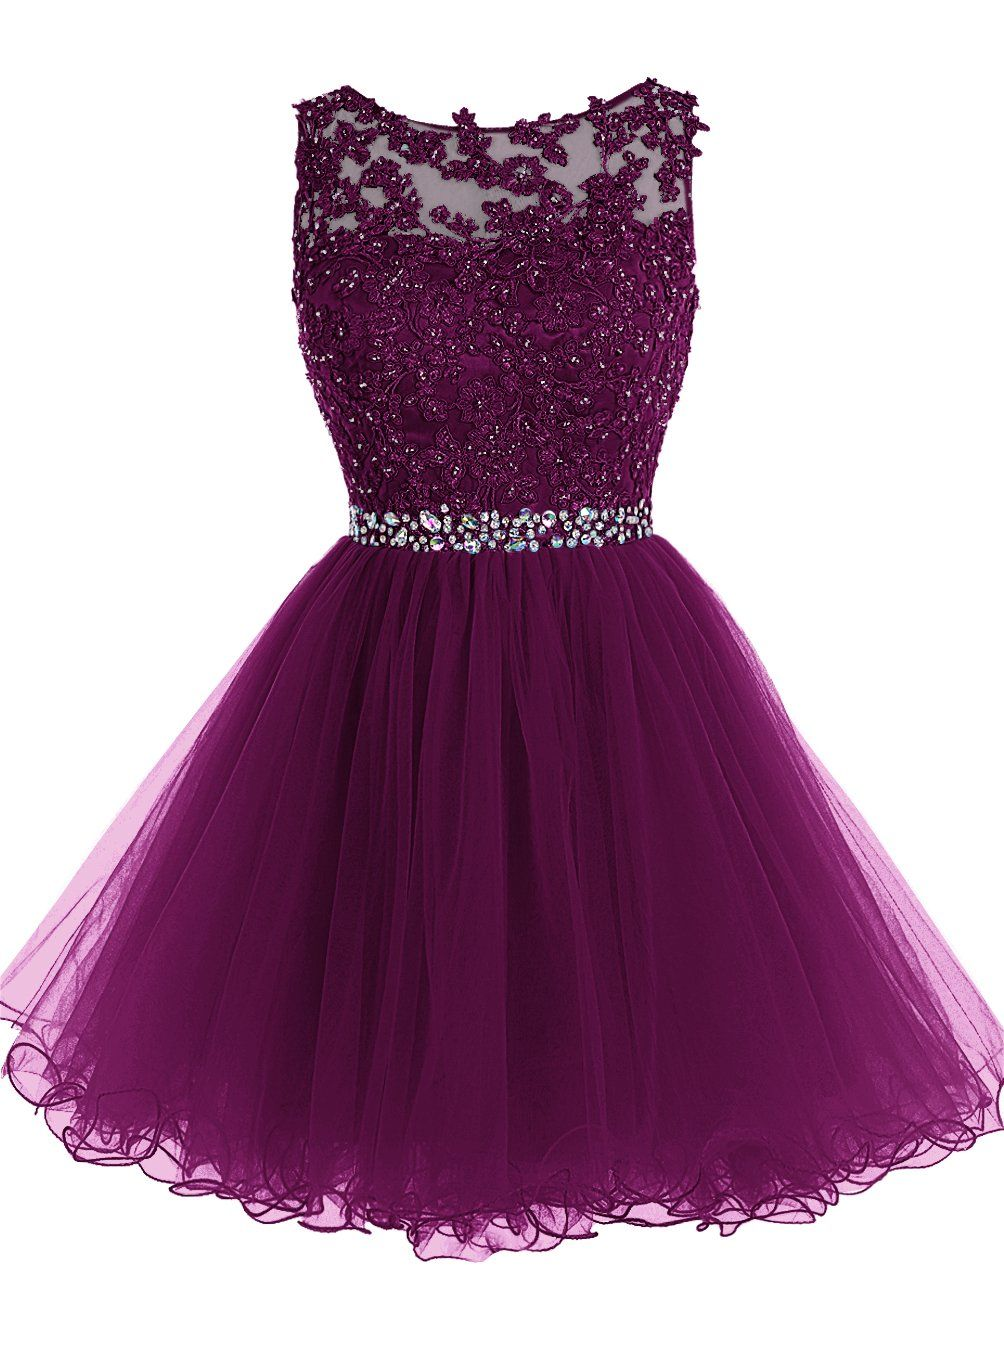 Tideclothes Short Beaded Prom Dress Tulle Applique Evening Dress ...